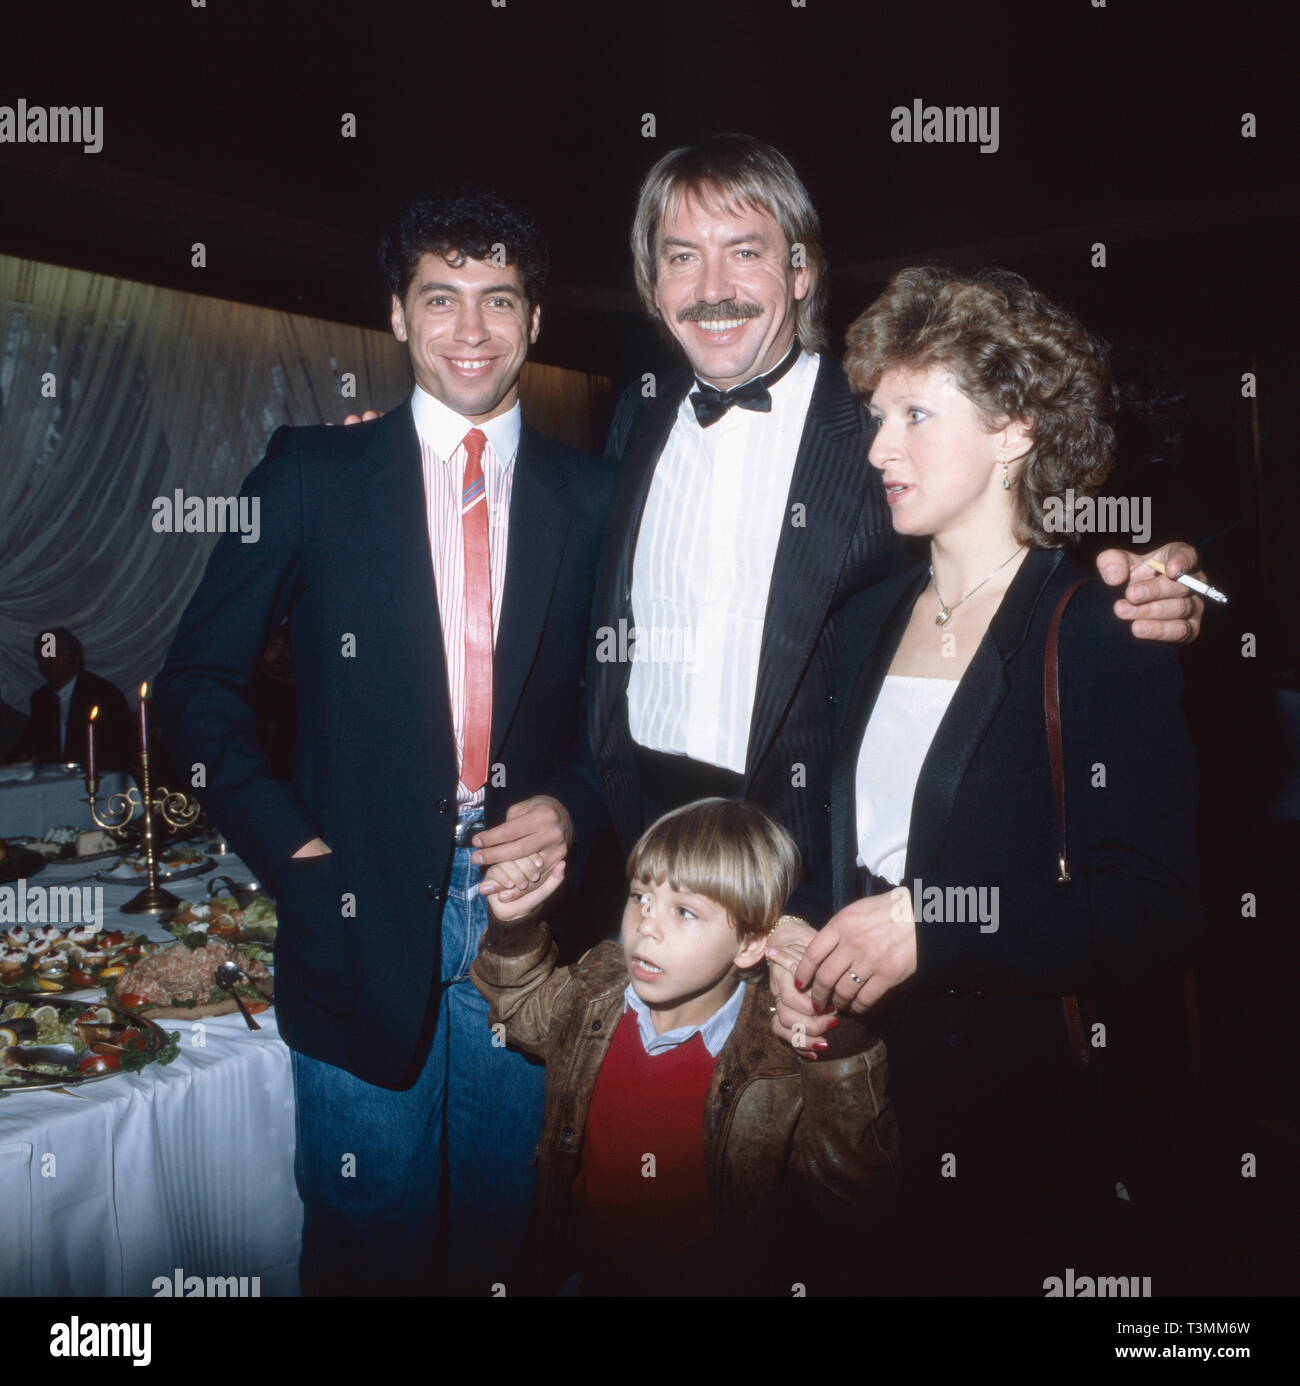 Werner Böhm, deutscher Sänger und Musiker, am Tag seiner Heirat mit Schlagersängerin Mary Roos (nicht im Bild), Deutschland 1981. German singer and musician on the day of his marriage with schlager singer Mary Roos (nt in the photo), Germany 1981. Stock Photo